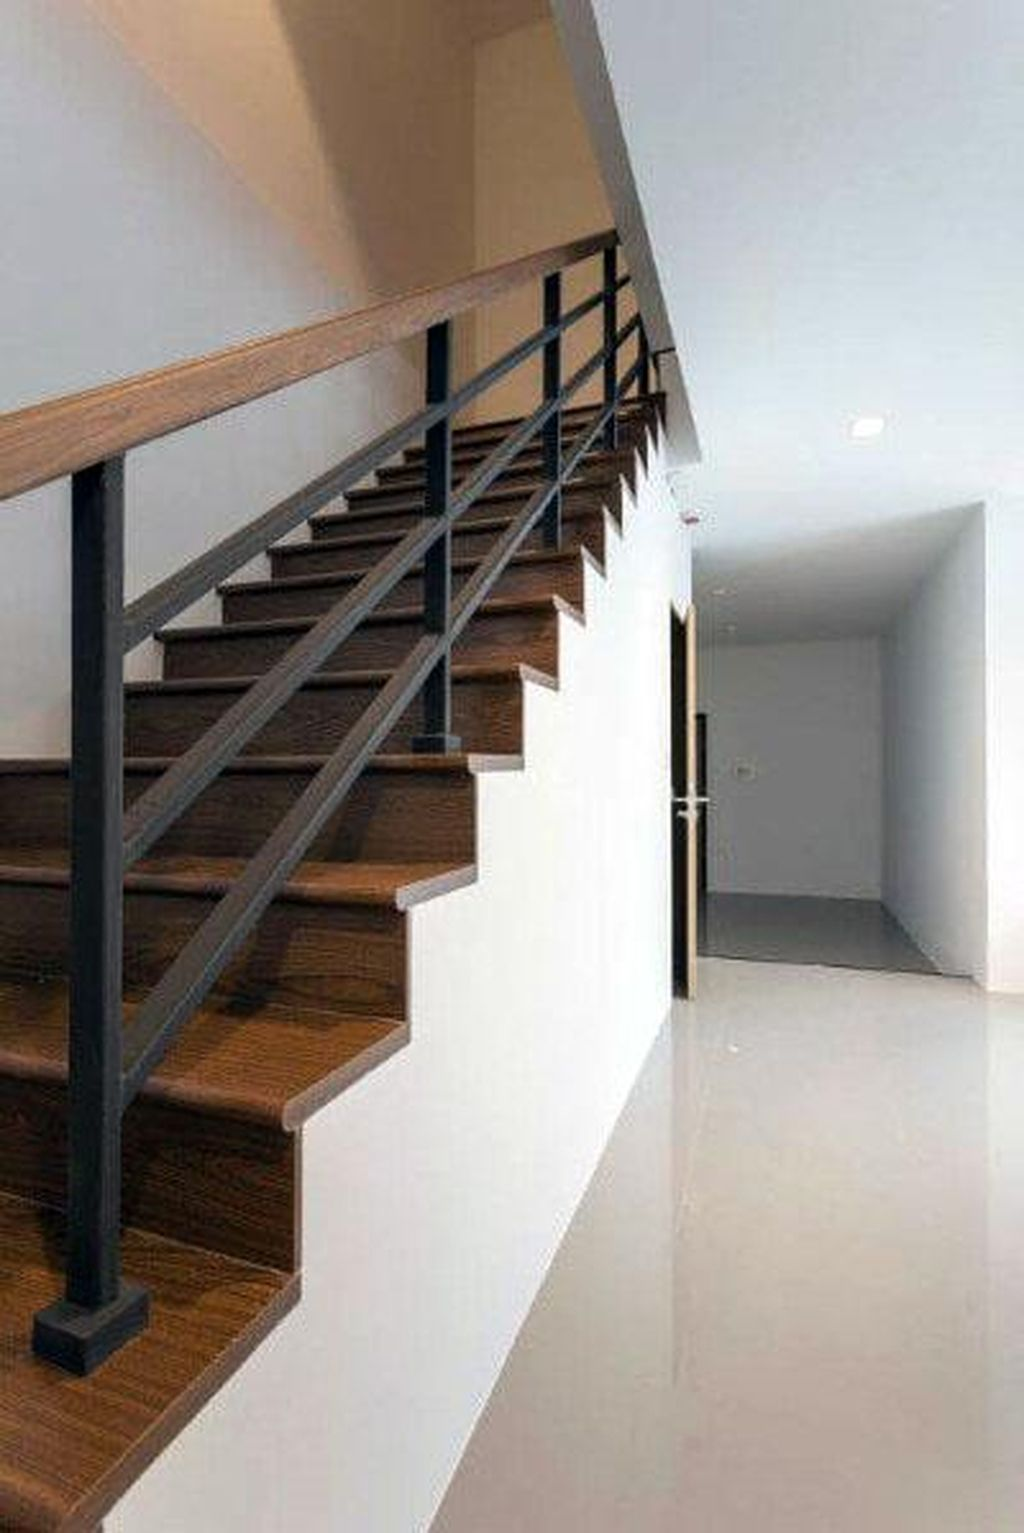 30 Wonderful Wooden Staircase Design Ideas For Branching Out In 2020 Modern Stair Railing Metal Stair Railing Stairs Design Modern